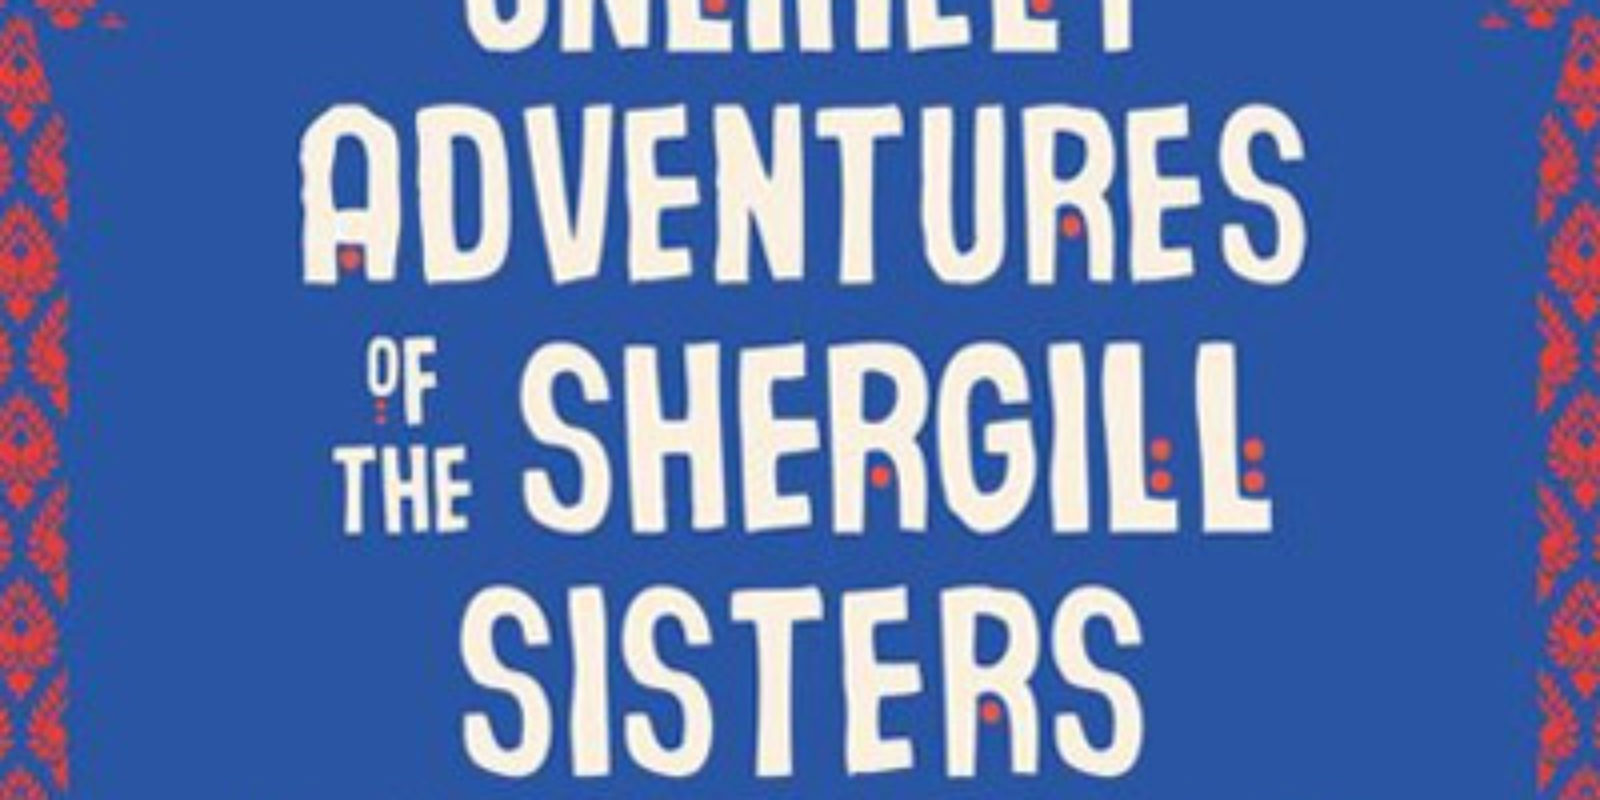 The-Unlikely-Adventures-of-the-Shergill-Sisters-by-Balli-Kaur-Jaswal